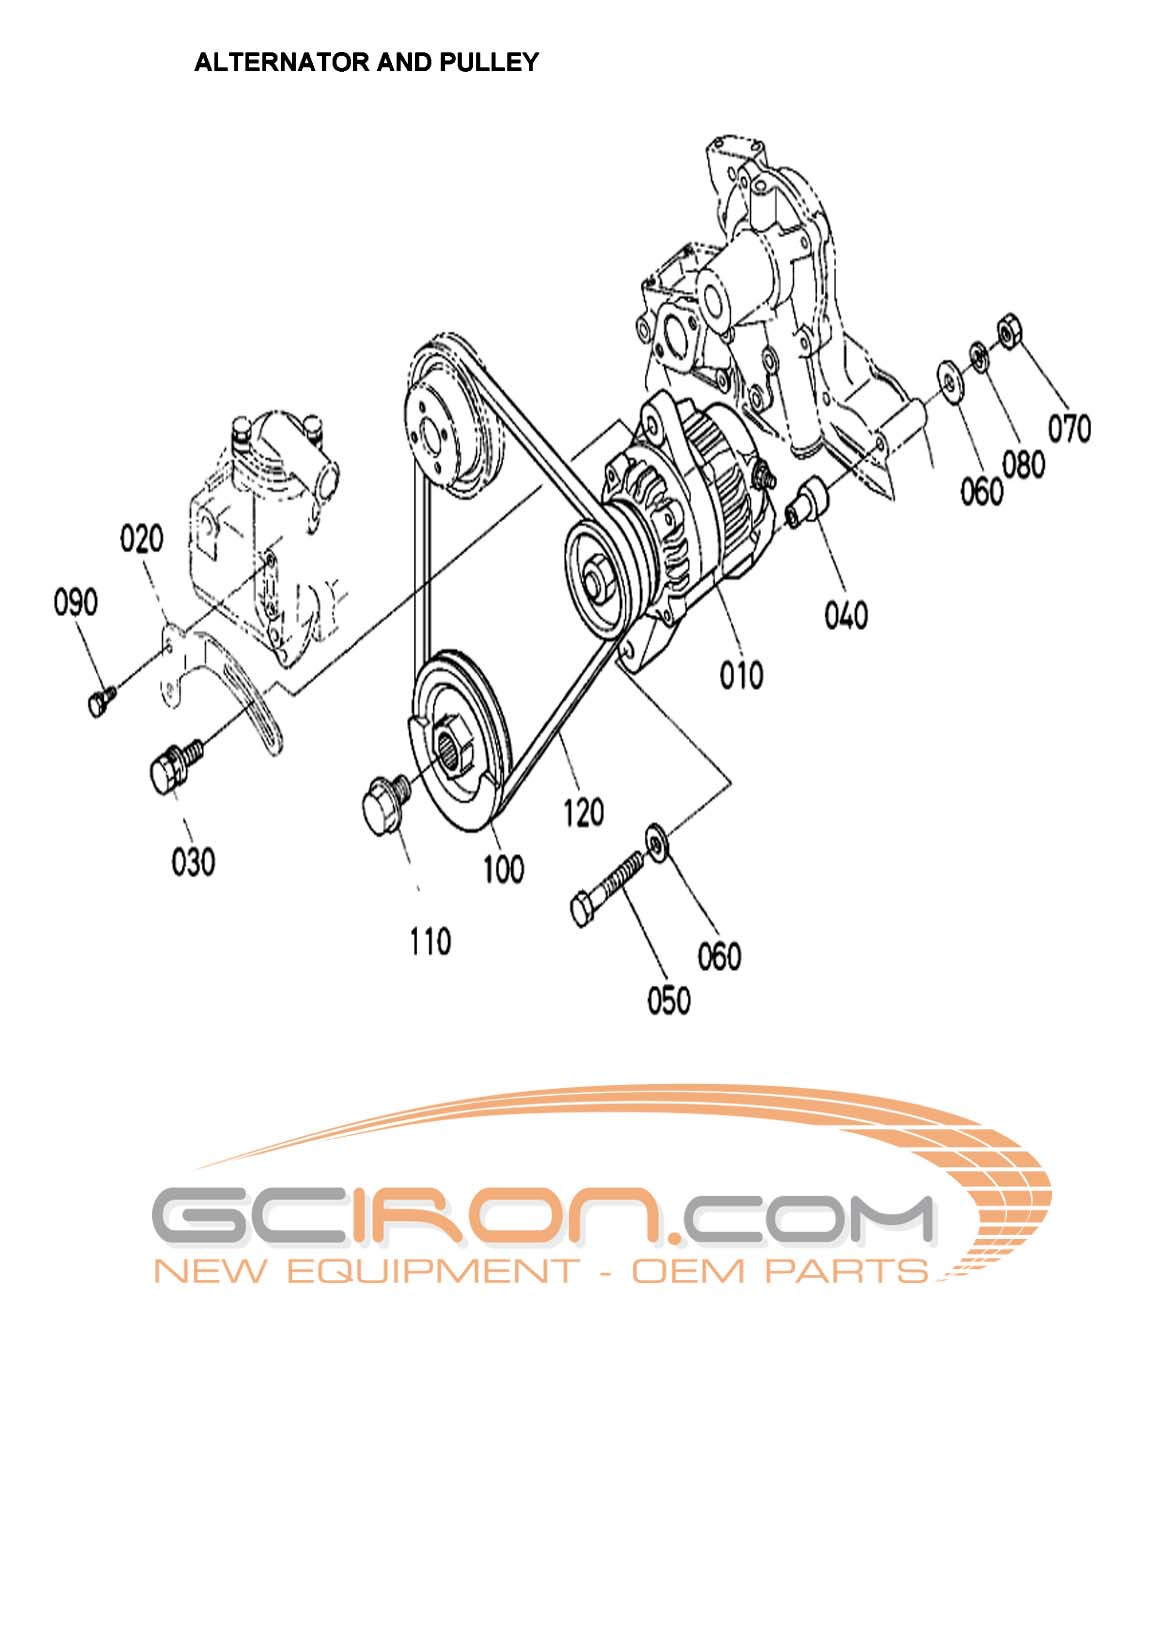 Construction Equipment Parts: JLG Parts from www.GCIron.com